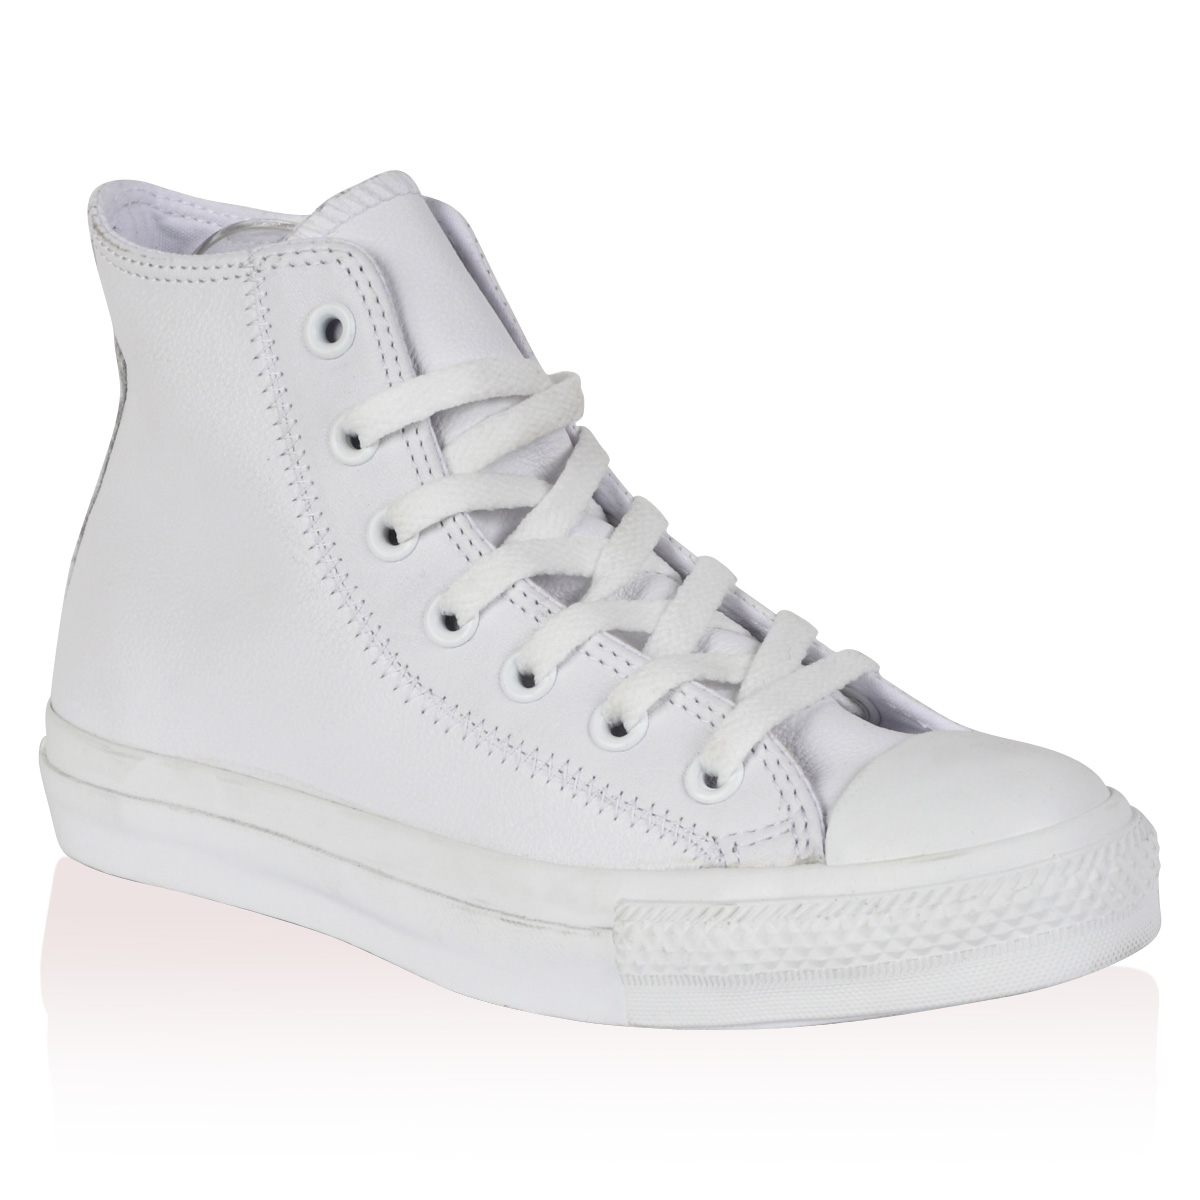 unisex converse all mens womens white leather hi top